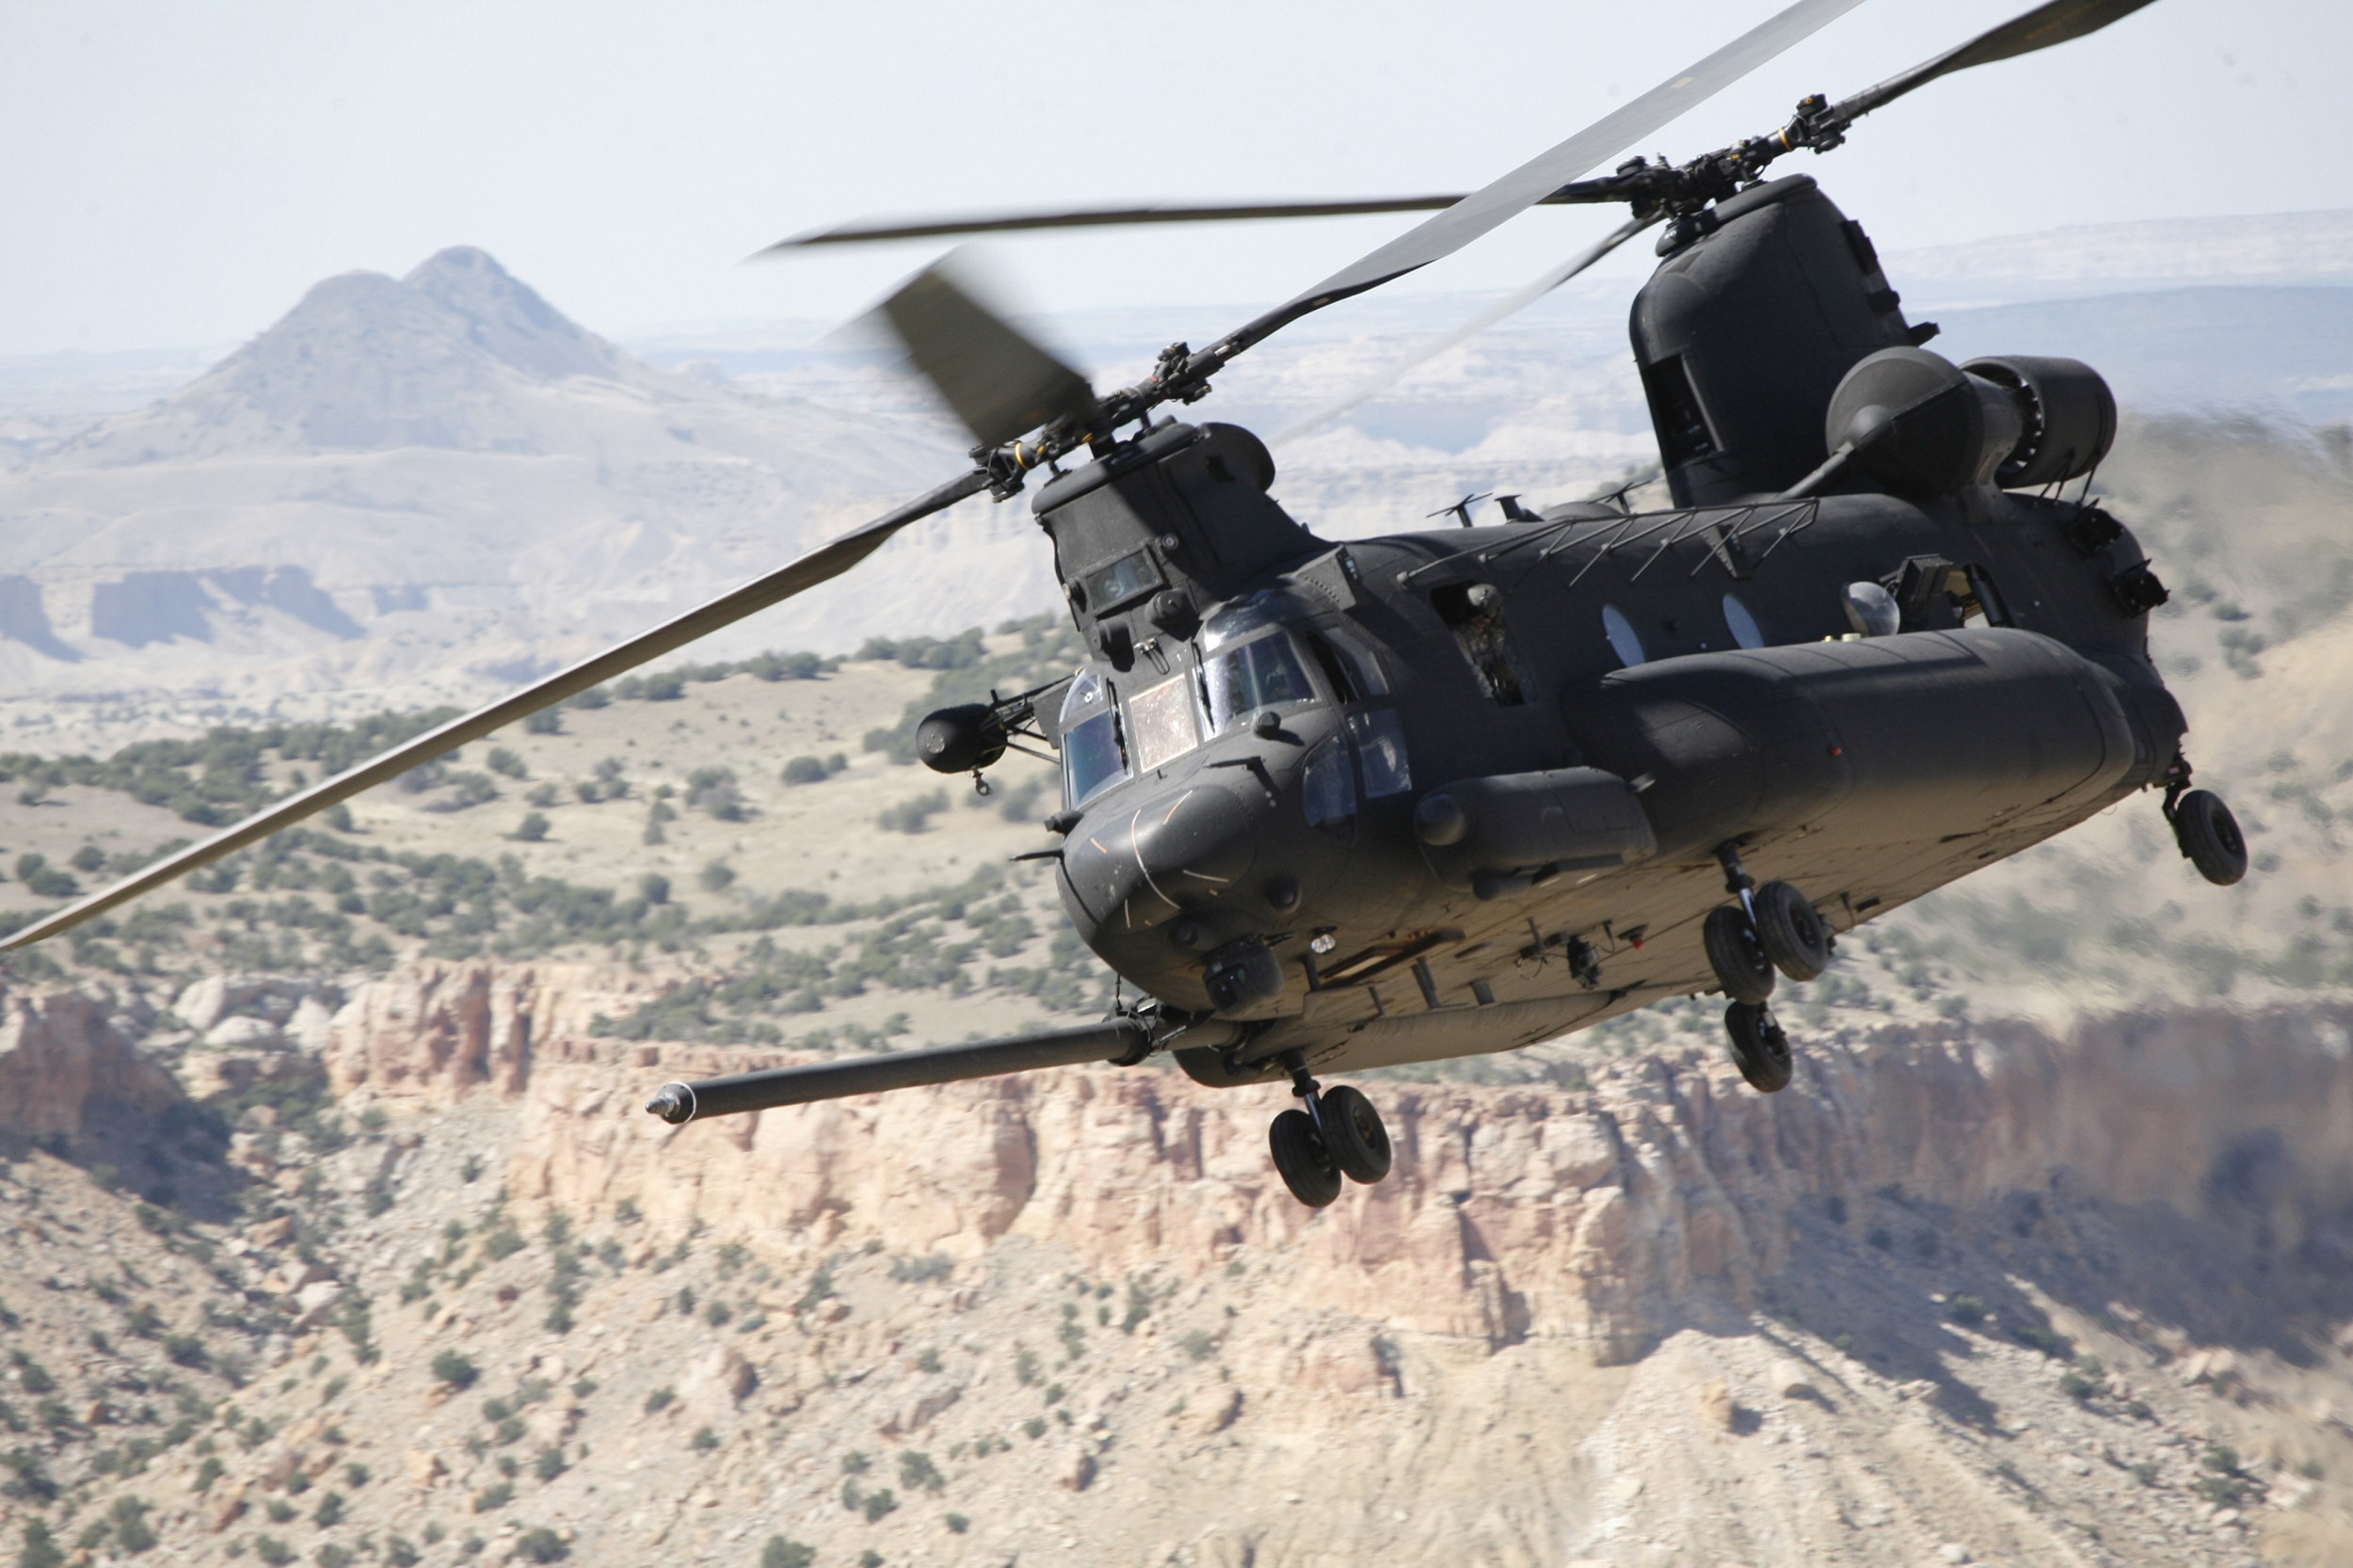 This MH-47 Chinook is an Army helicopter that has been modified for SOF missions. SOCOM's programs are predominately ACAT III, thereby minimizing statutory requirements and layered oversight. ACAT I platforms such as the Chinook, as well as gunships and maritime vessels, are provided by the services, then modified by SOF AT&L for specific mission requirements. (Photo courtesy of SOF AT&L)